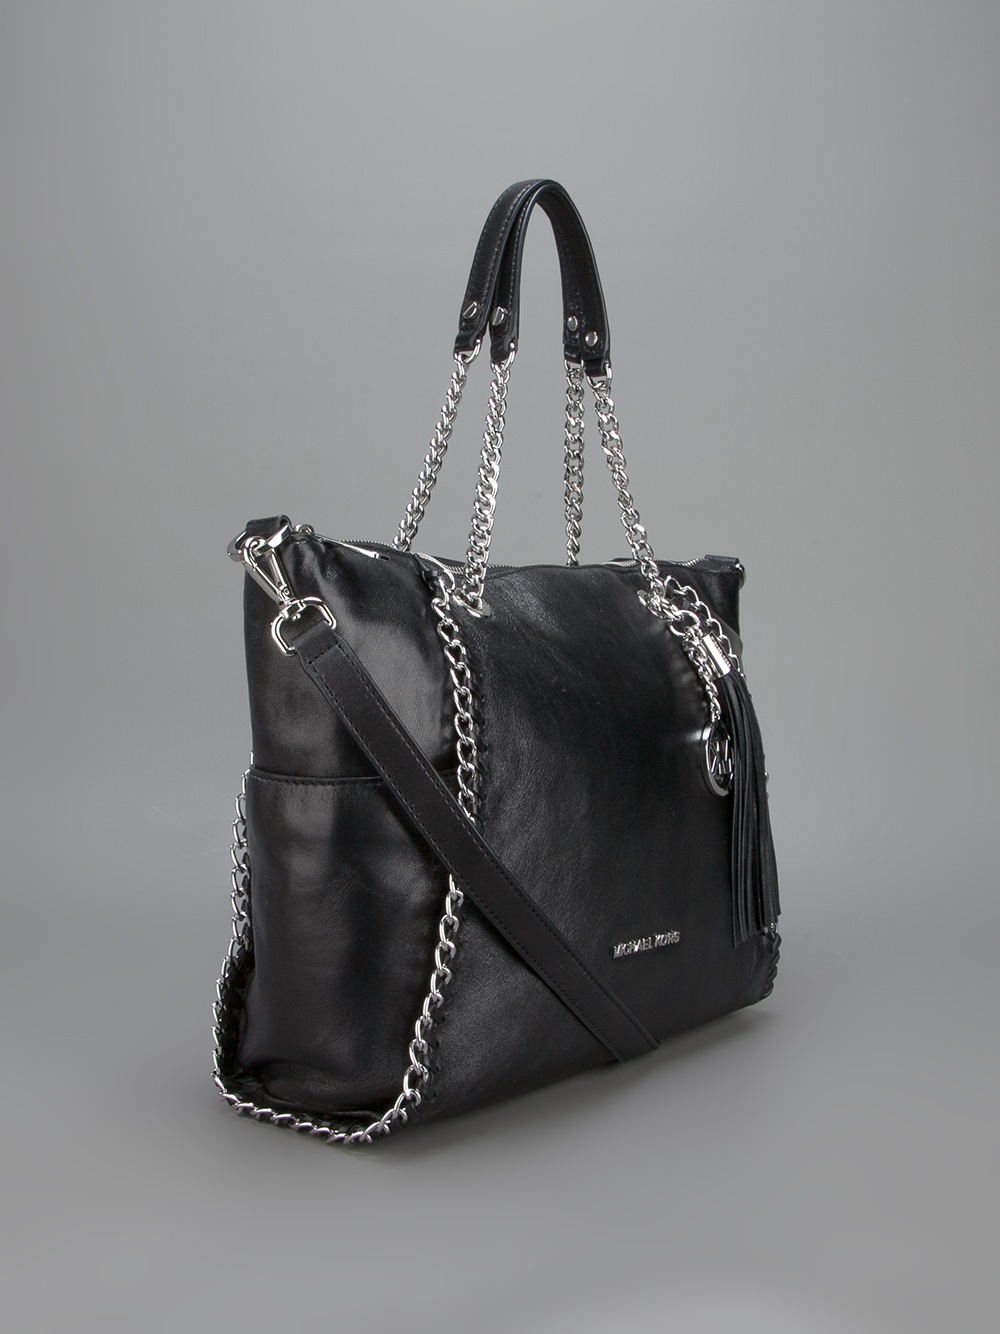 60611d89d76c 123456 365a4 632c2; low price lyst michael michael kors large chelsea tote  in black a9188 97ae5